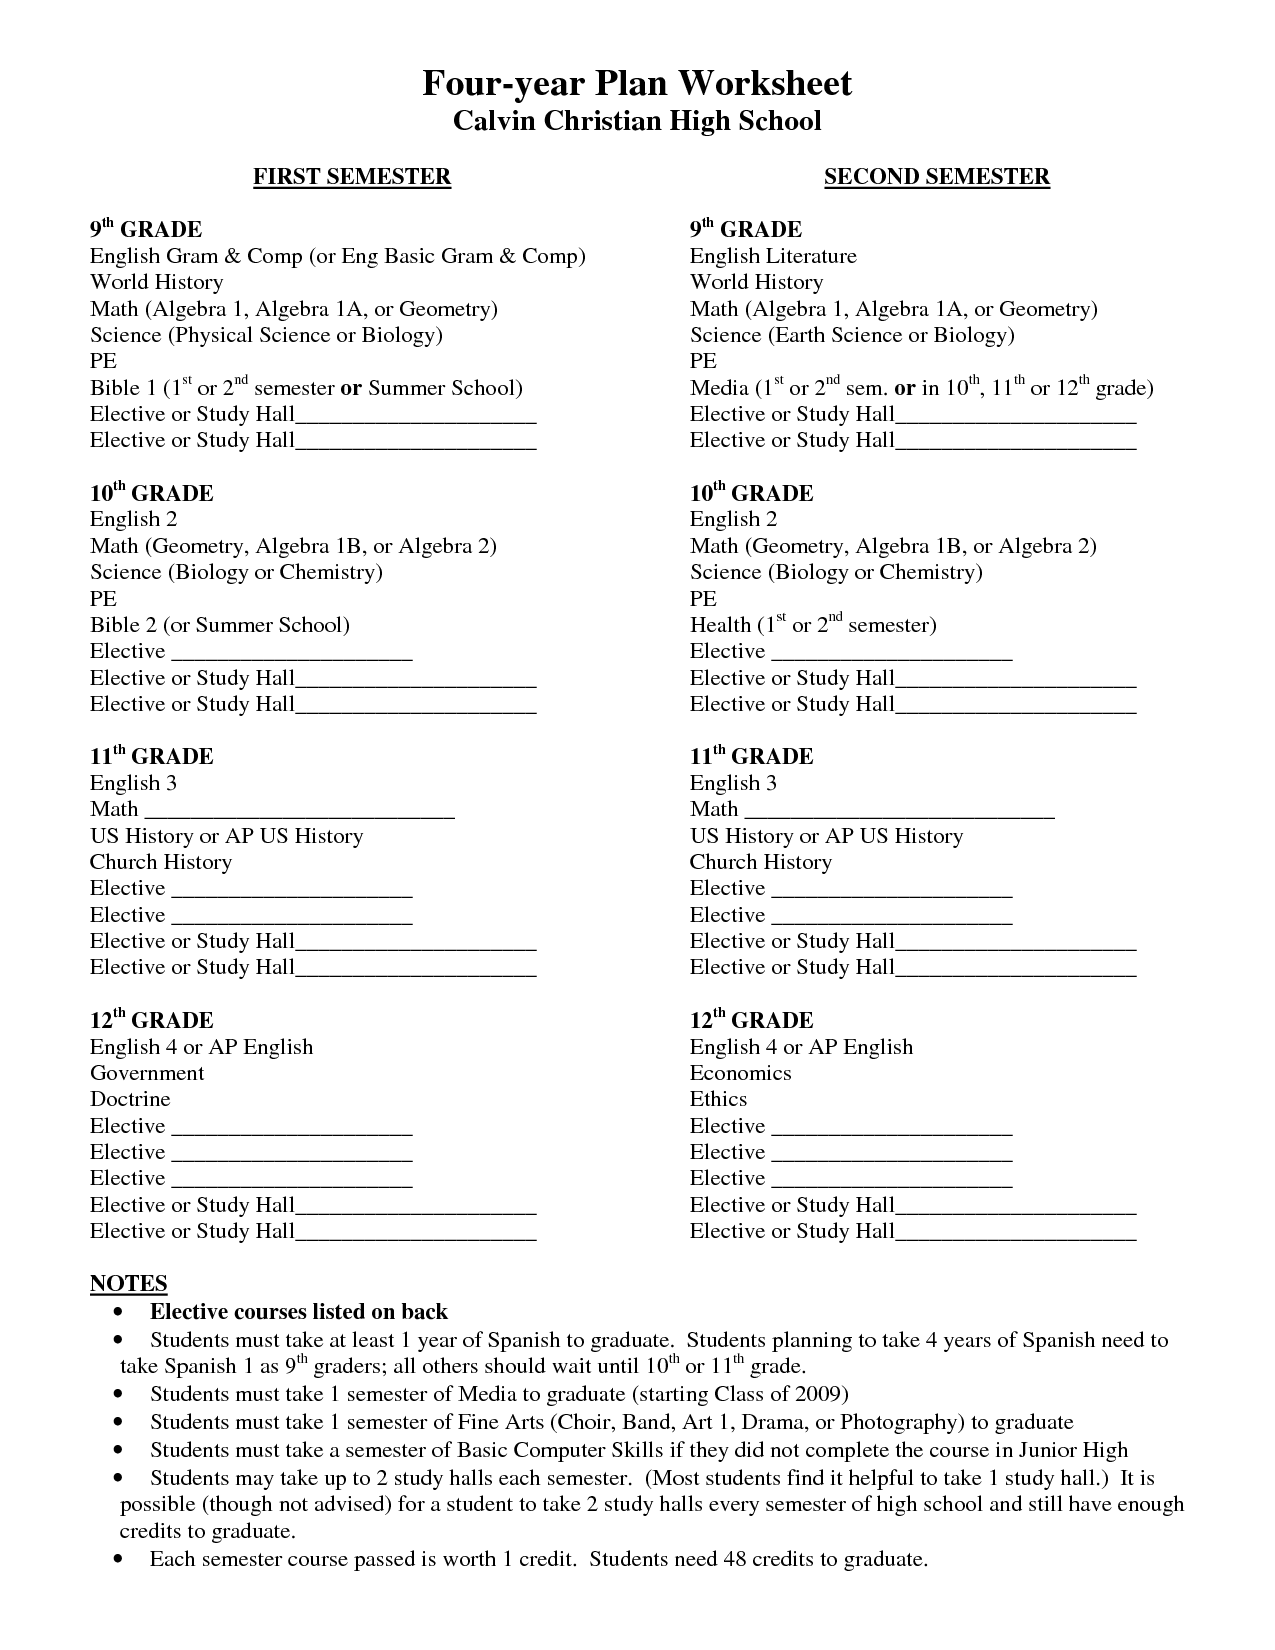 Answers To Brain Teasers Worksheet